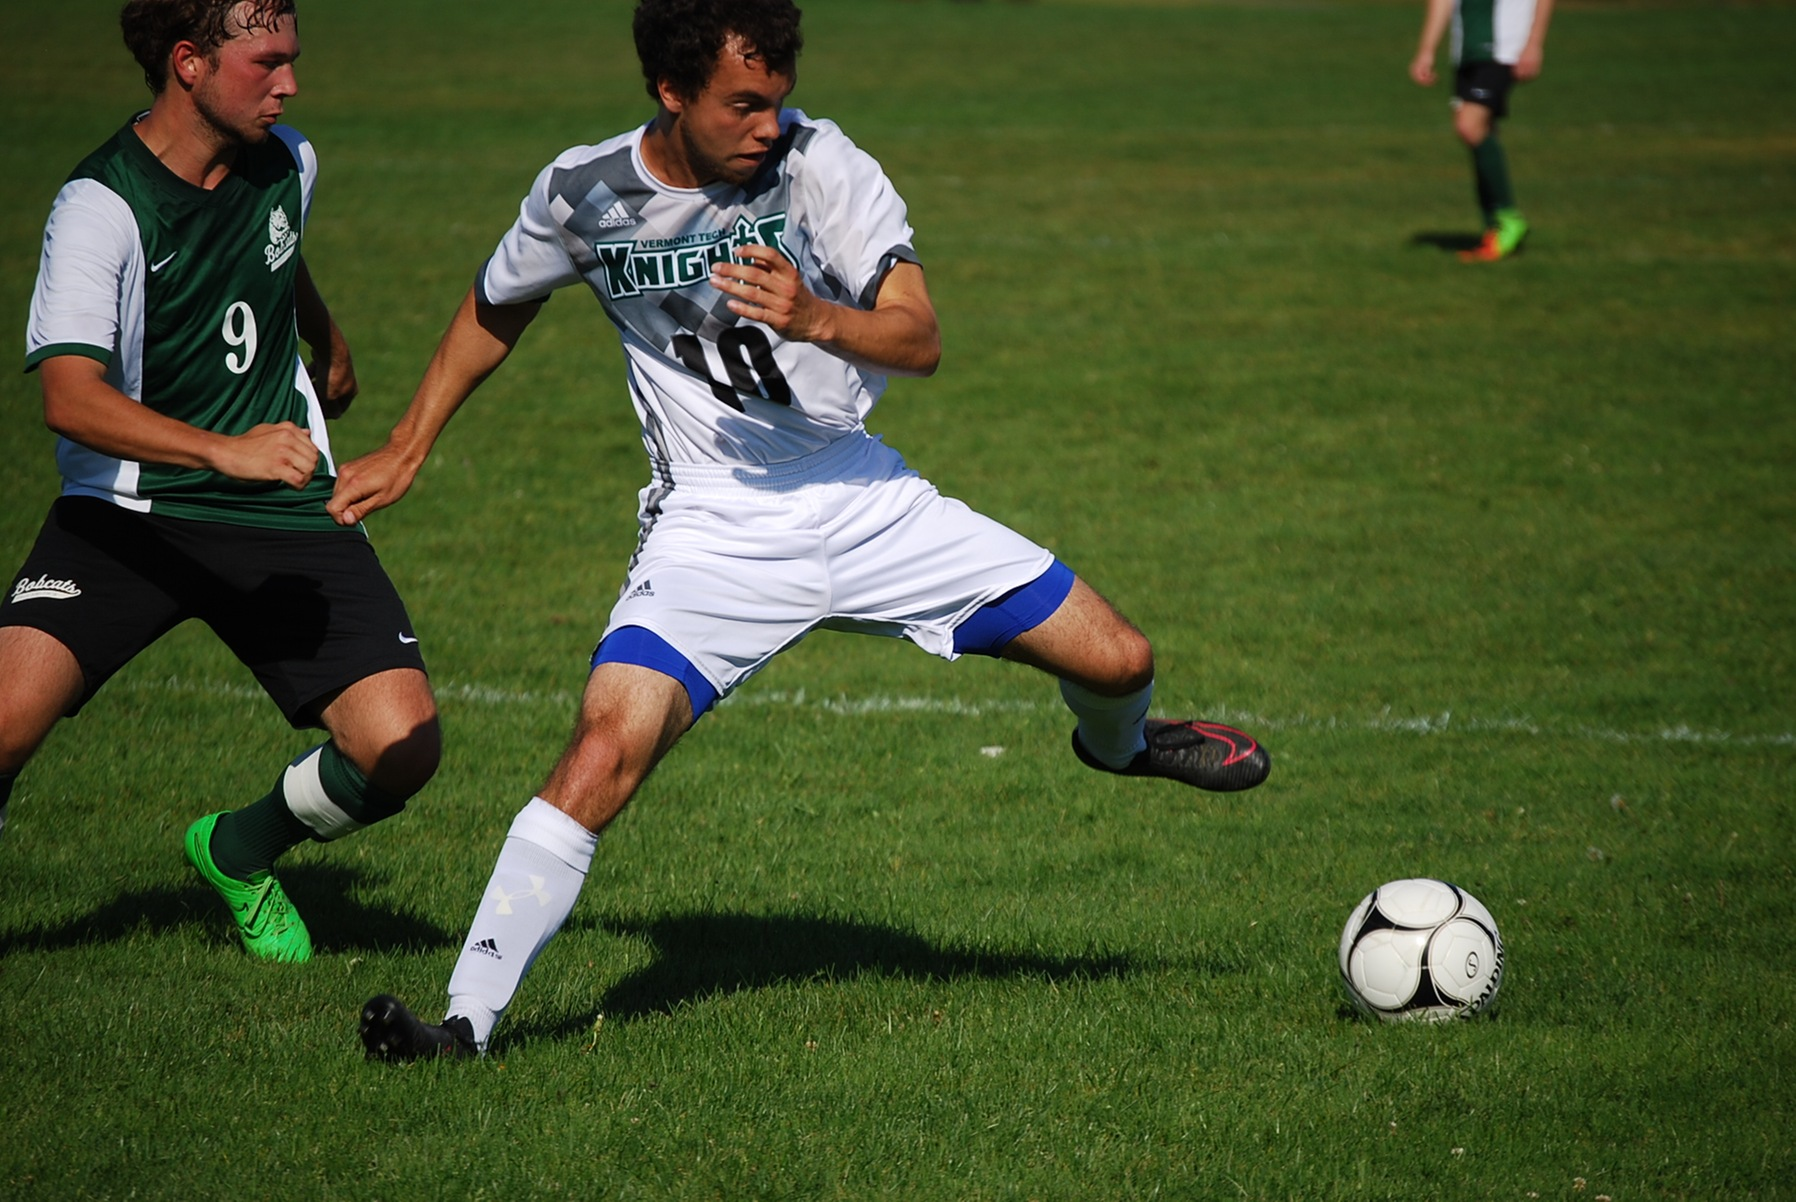 Knights men's soccer falls to Paul Smiths